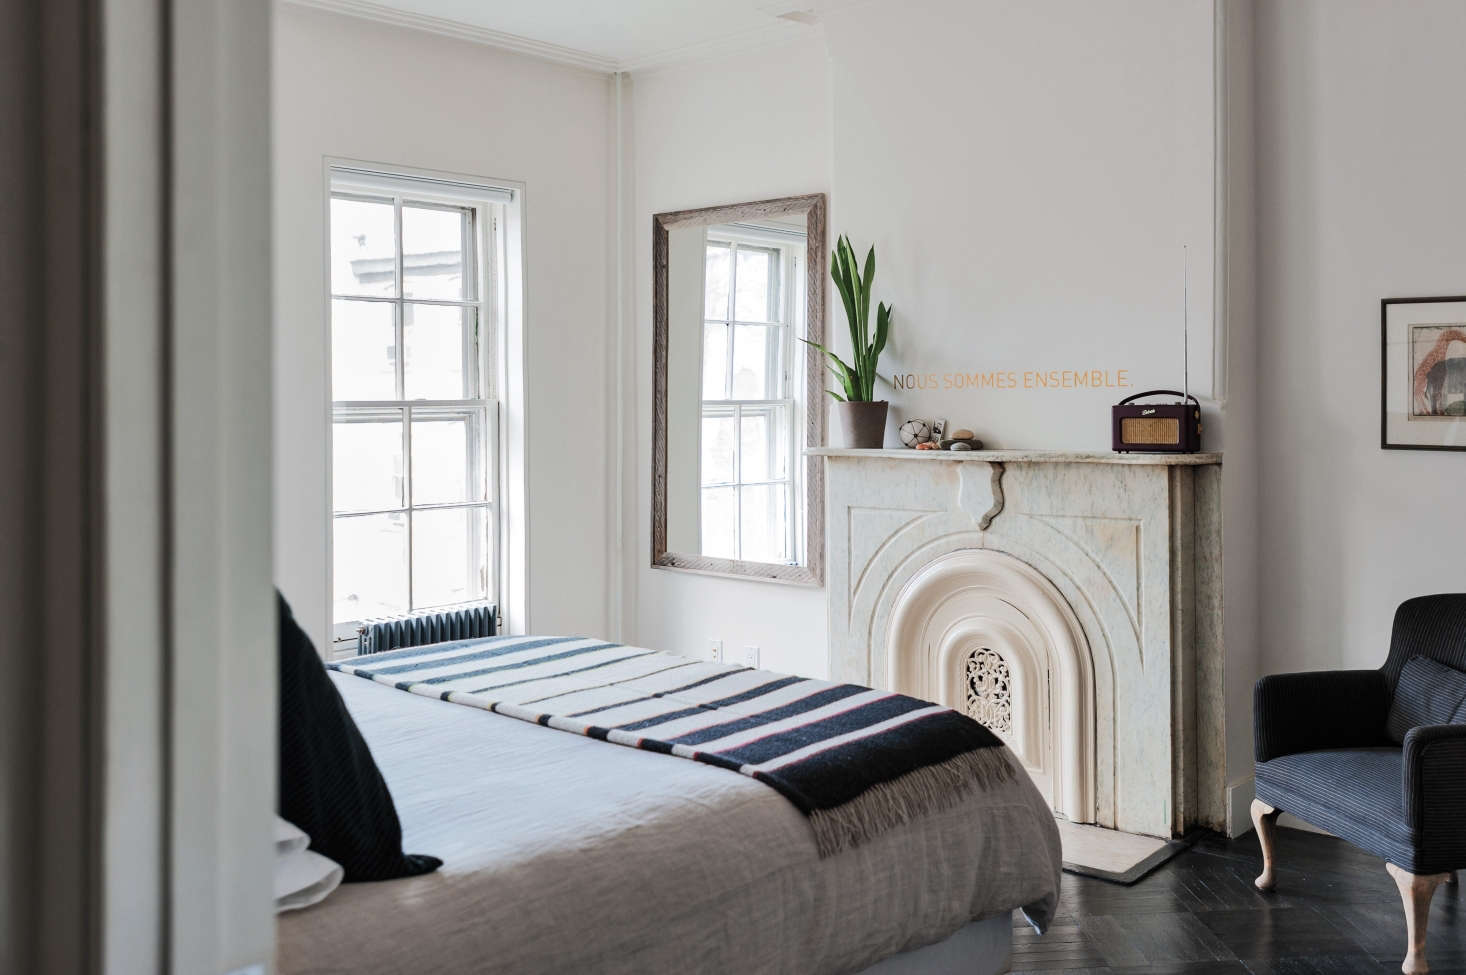 A non-functioning fireplace in a small bedroom by designer Elizabeth Roberts. Photograph by Matthew Williamsfrom Remodelista: A Manual for the Considered Home.